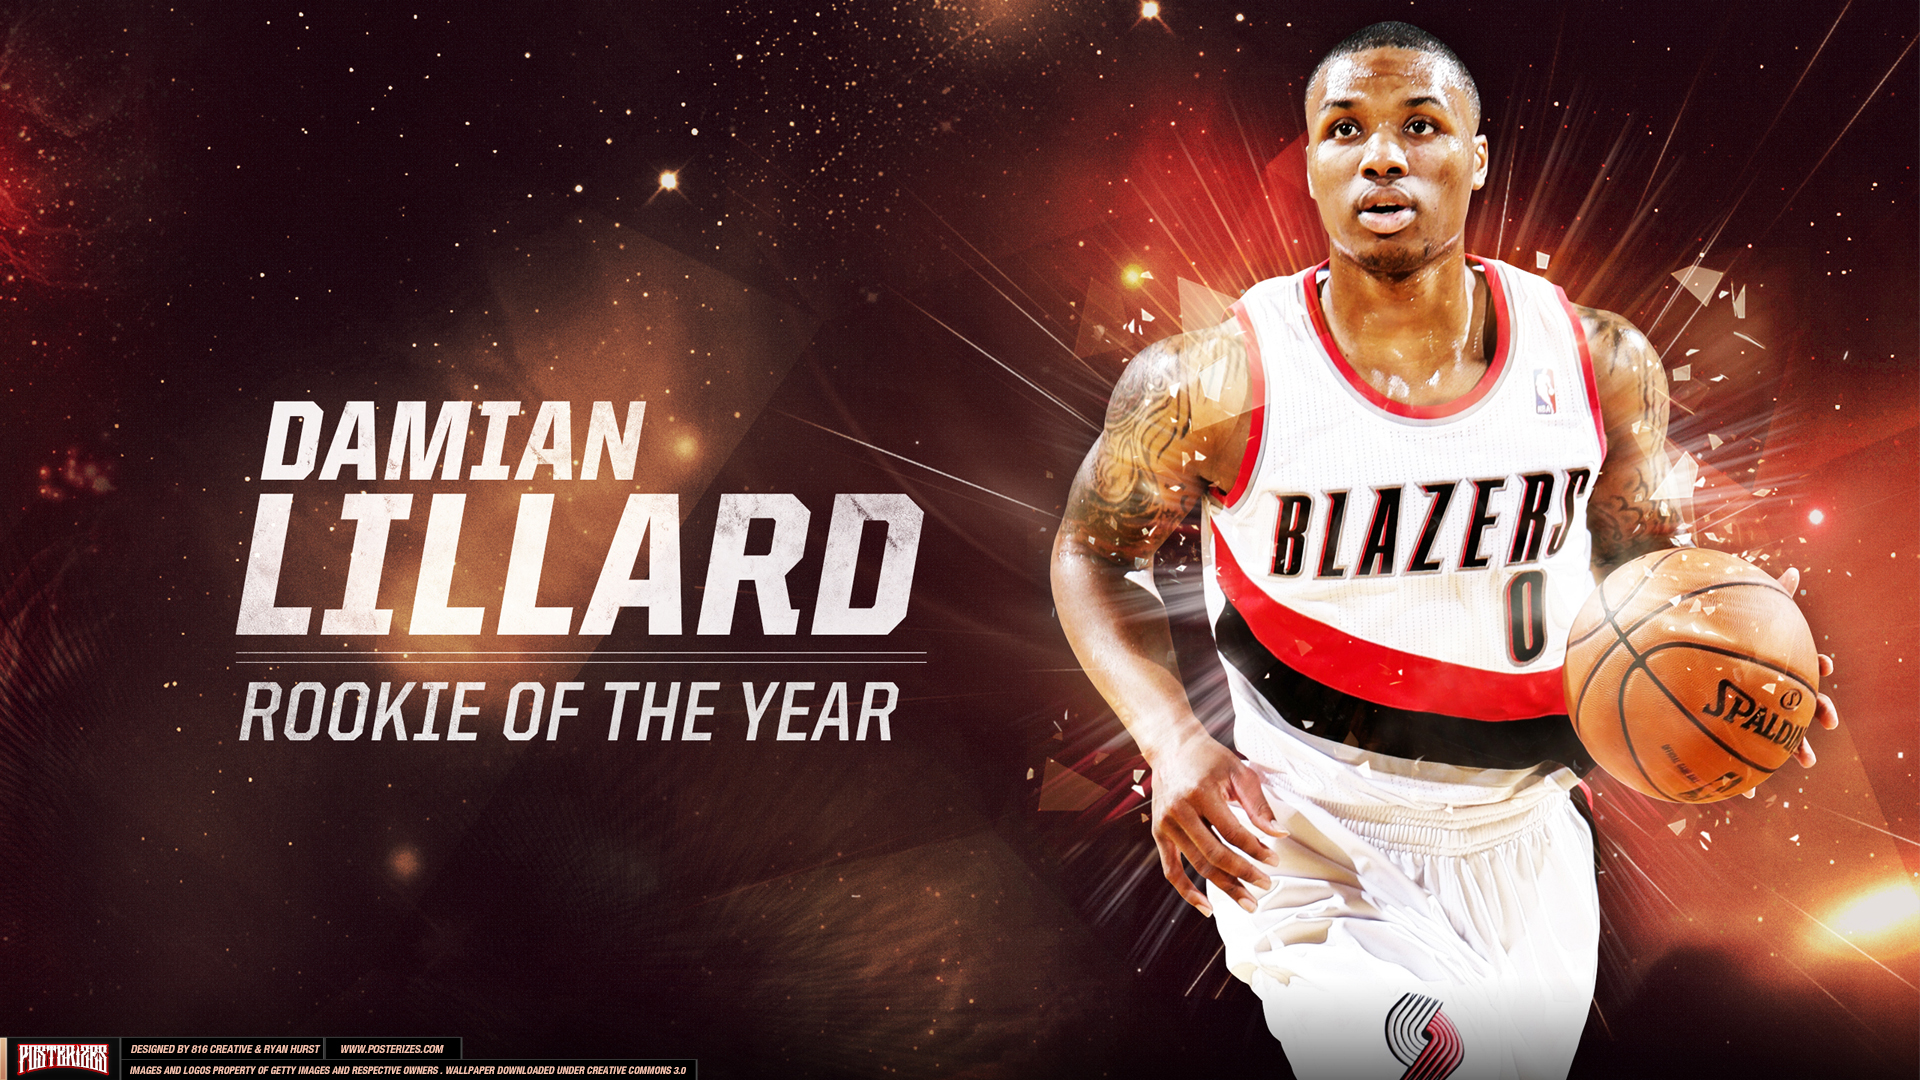 Damian Lillard Rookie of the Year Wallpaper HD Wallpaper